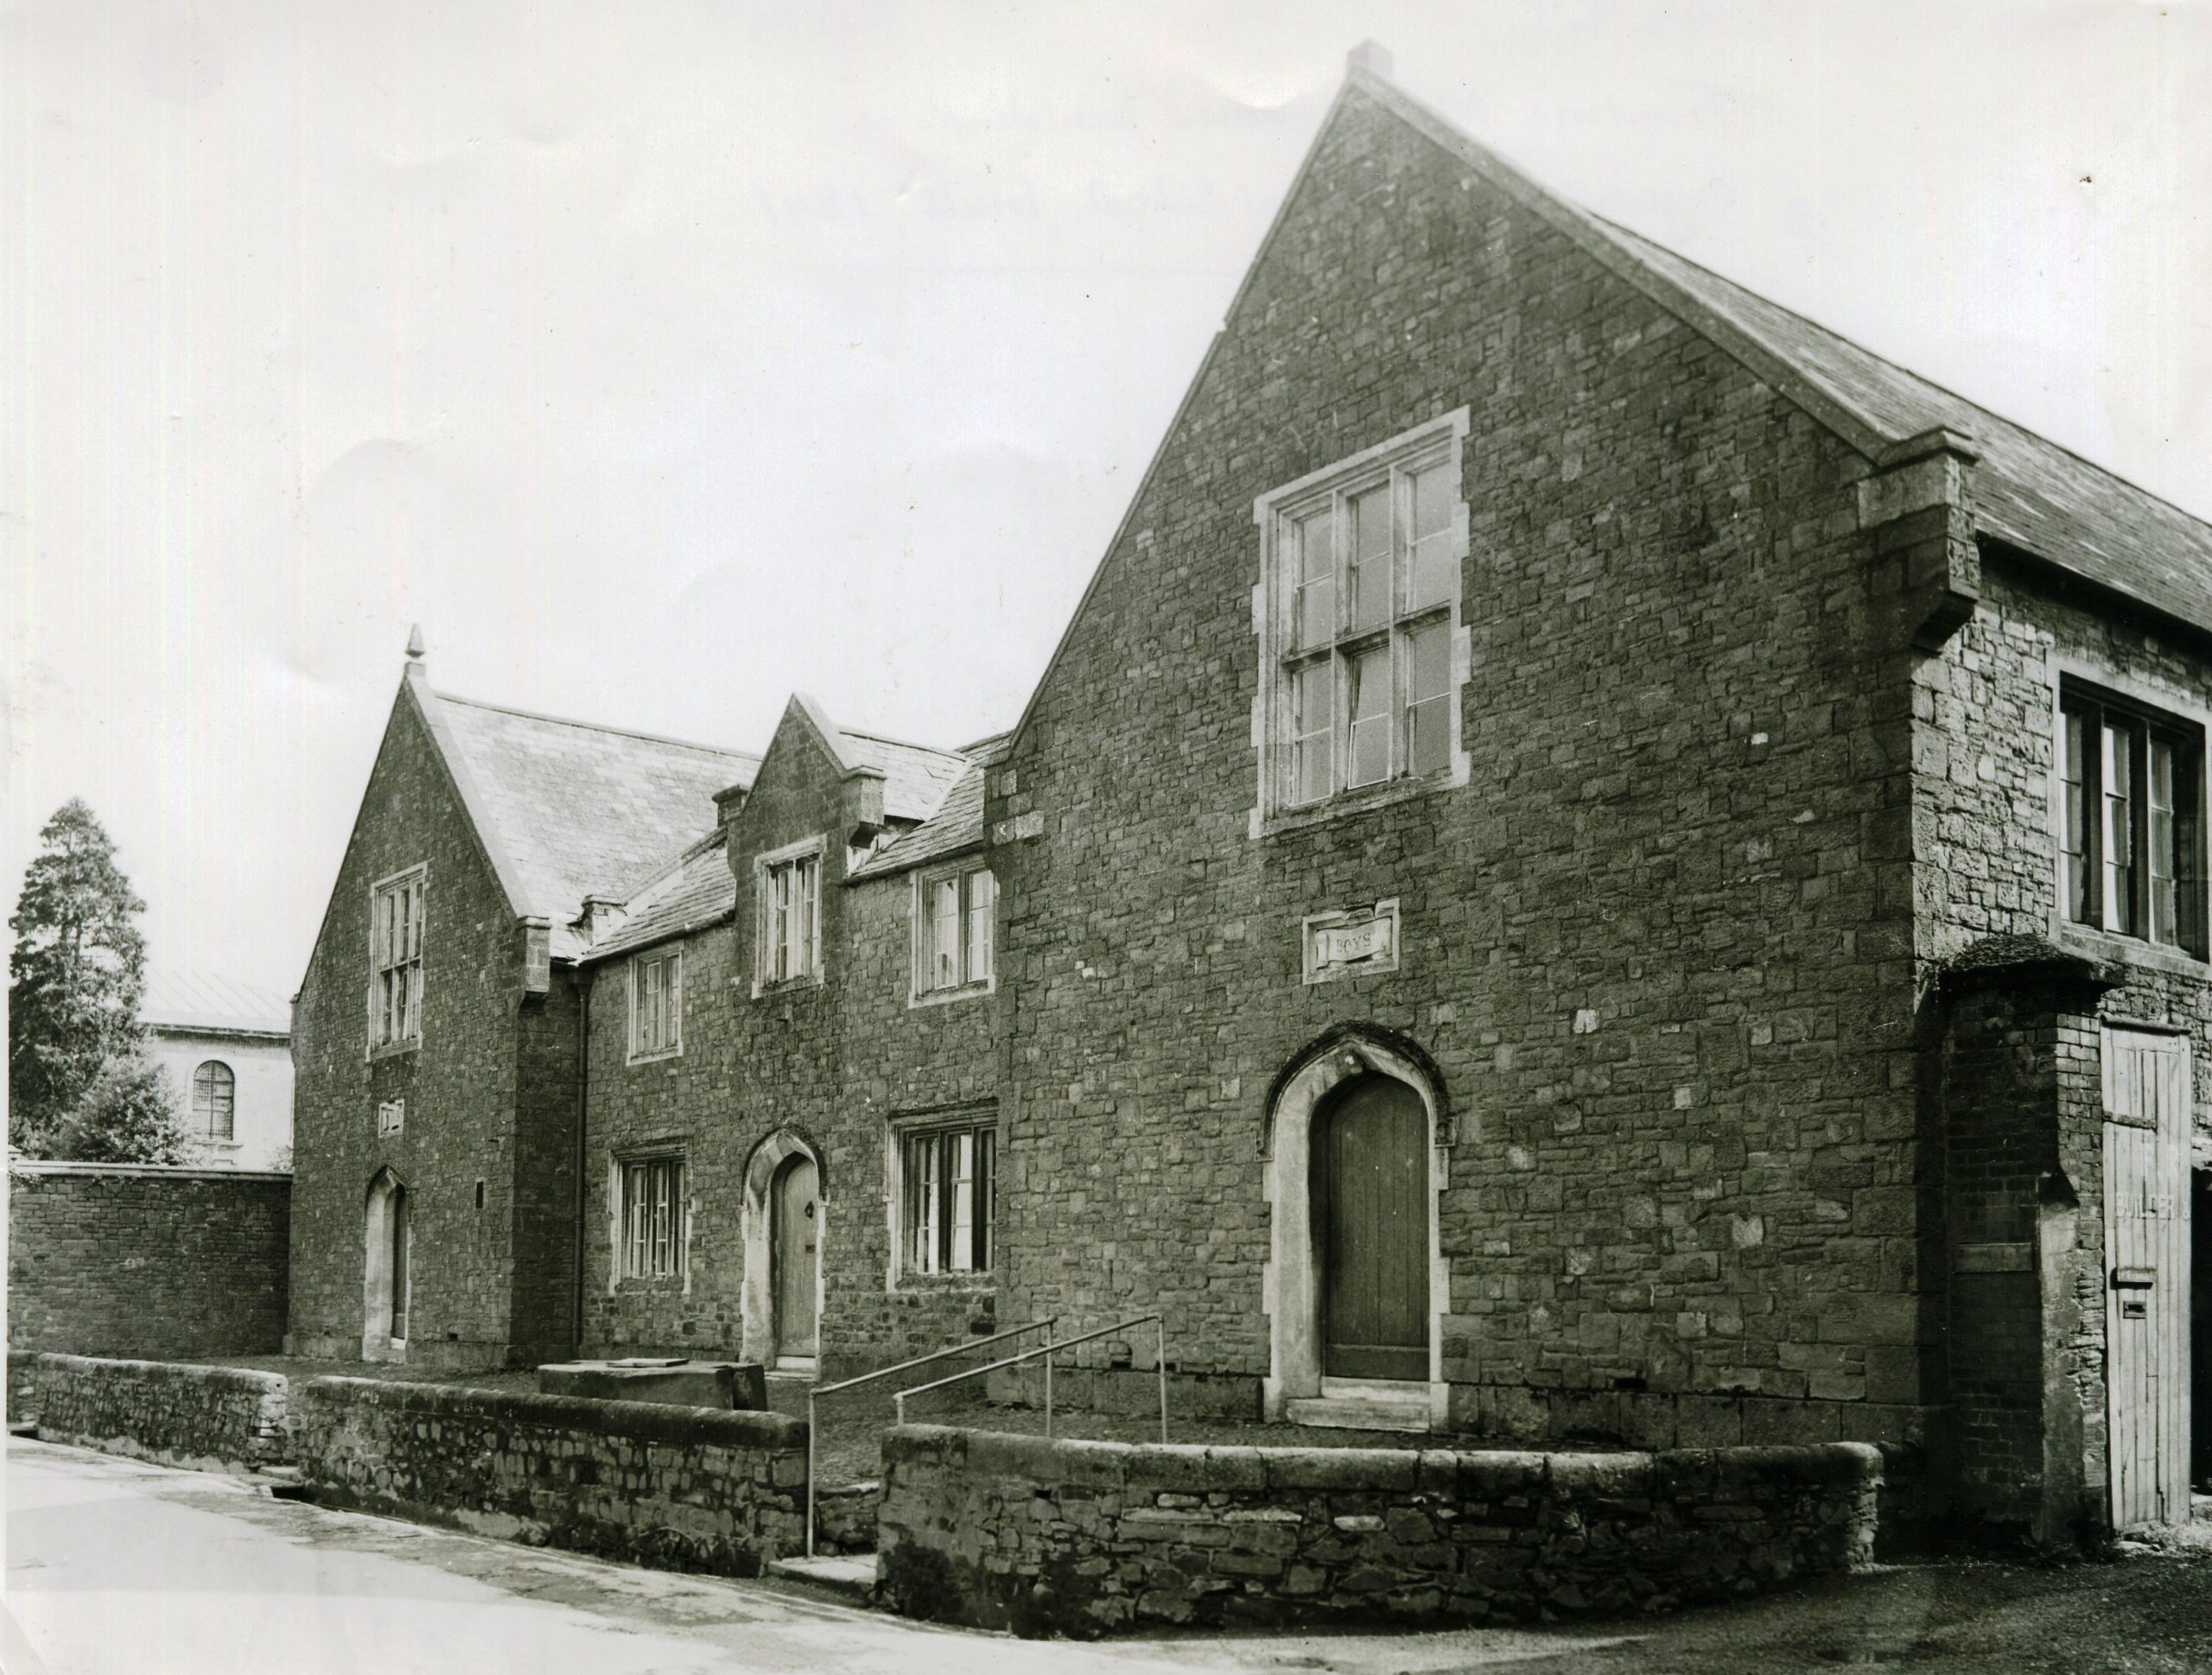 The National School building in Tiverton